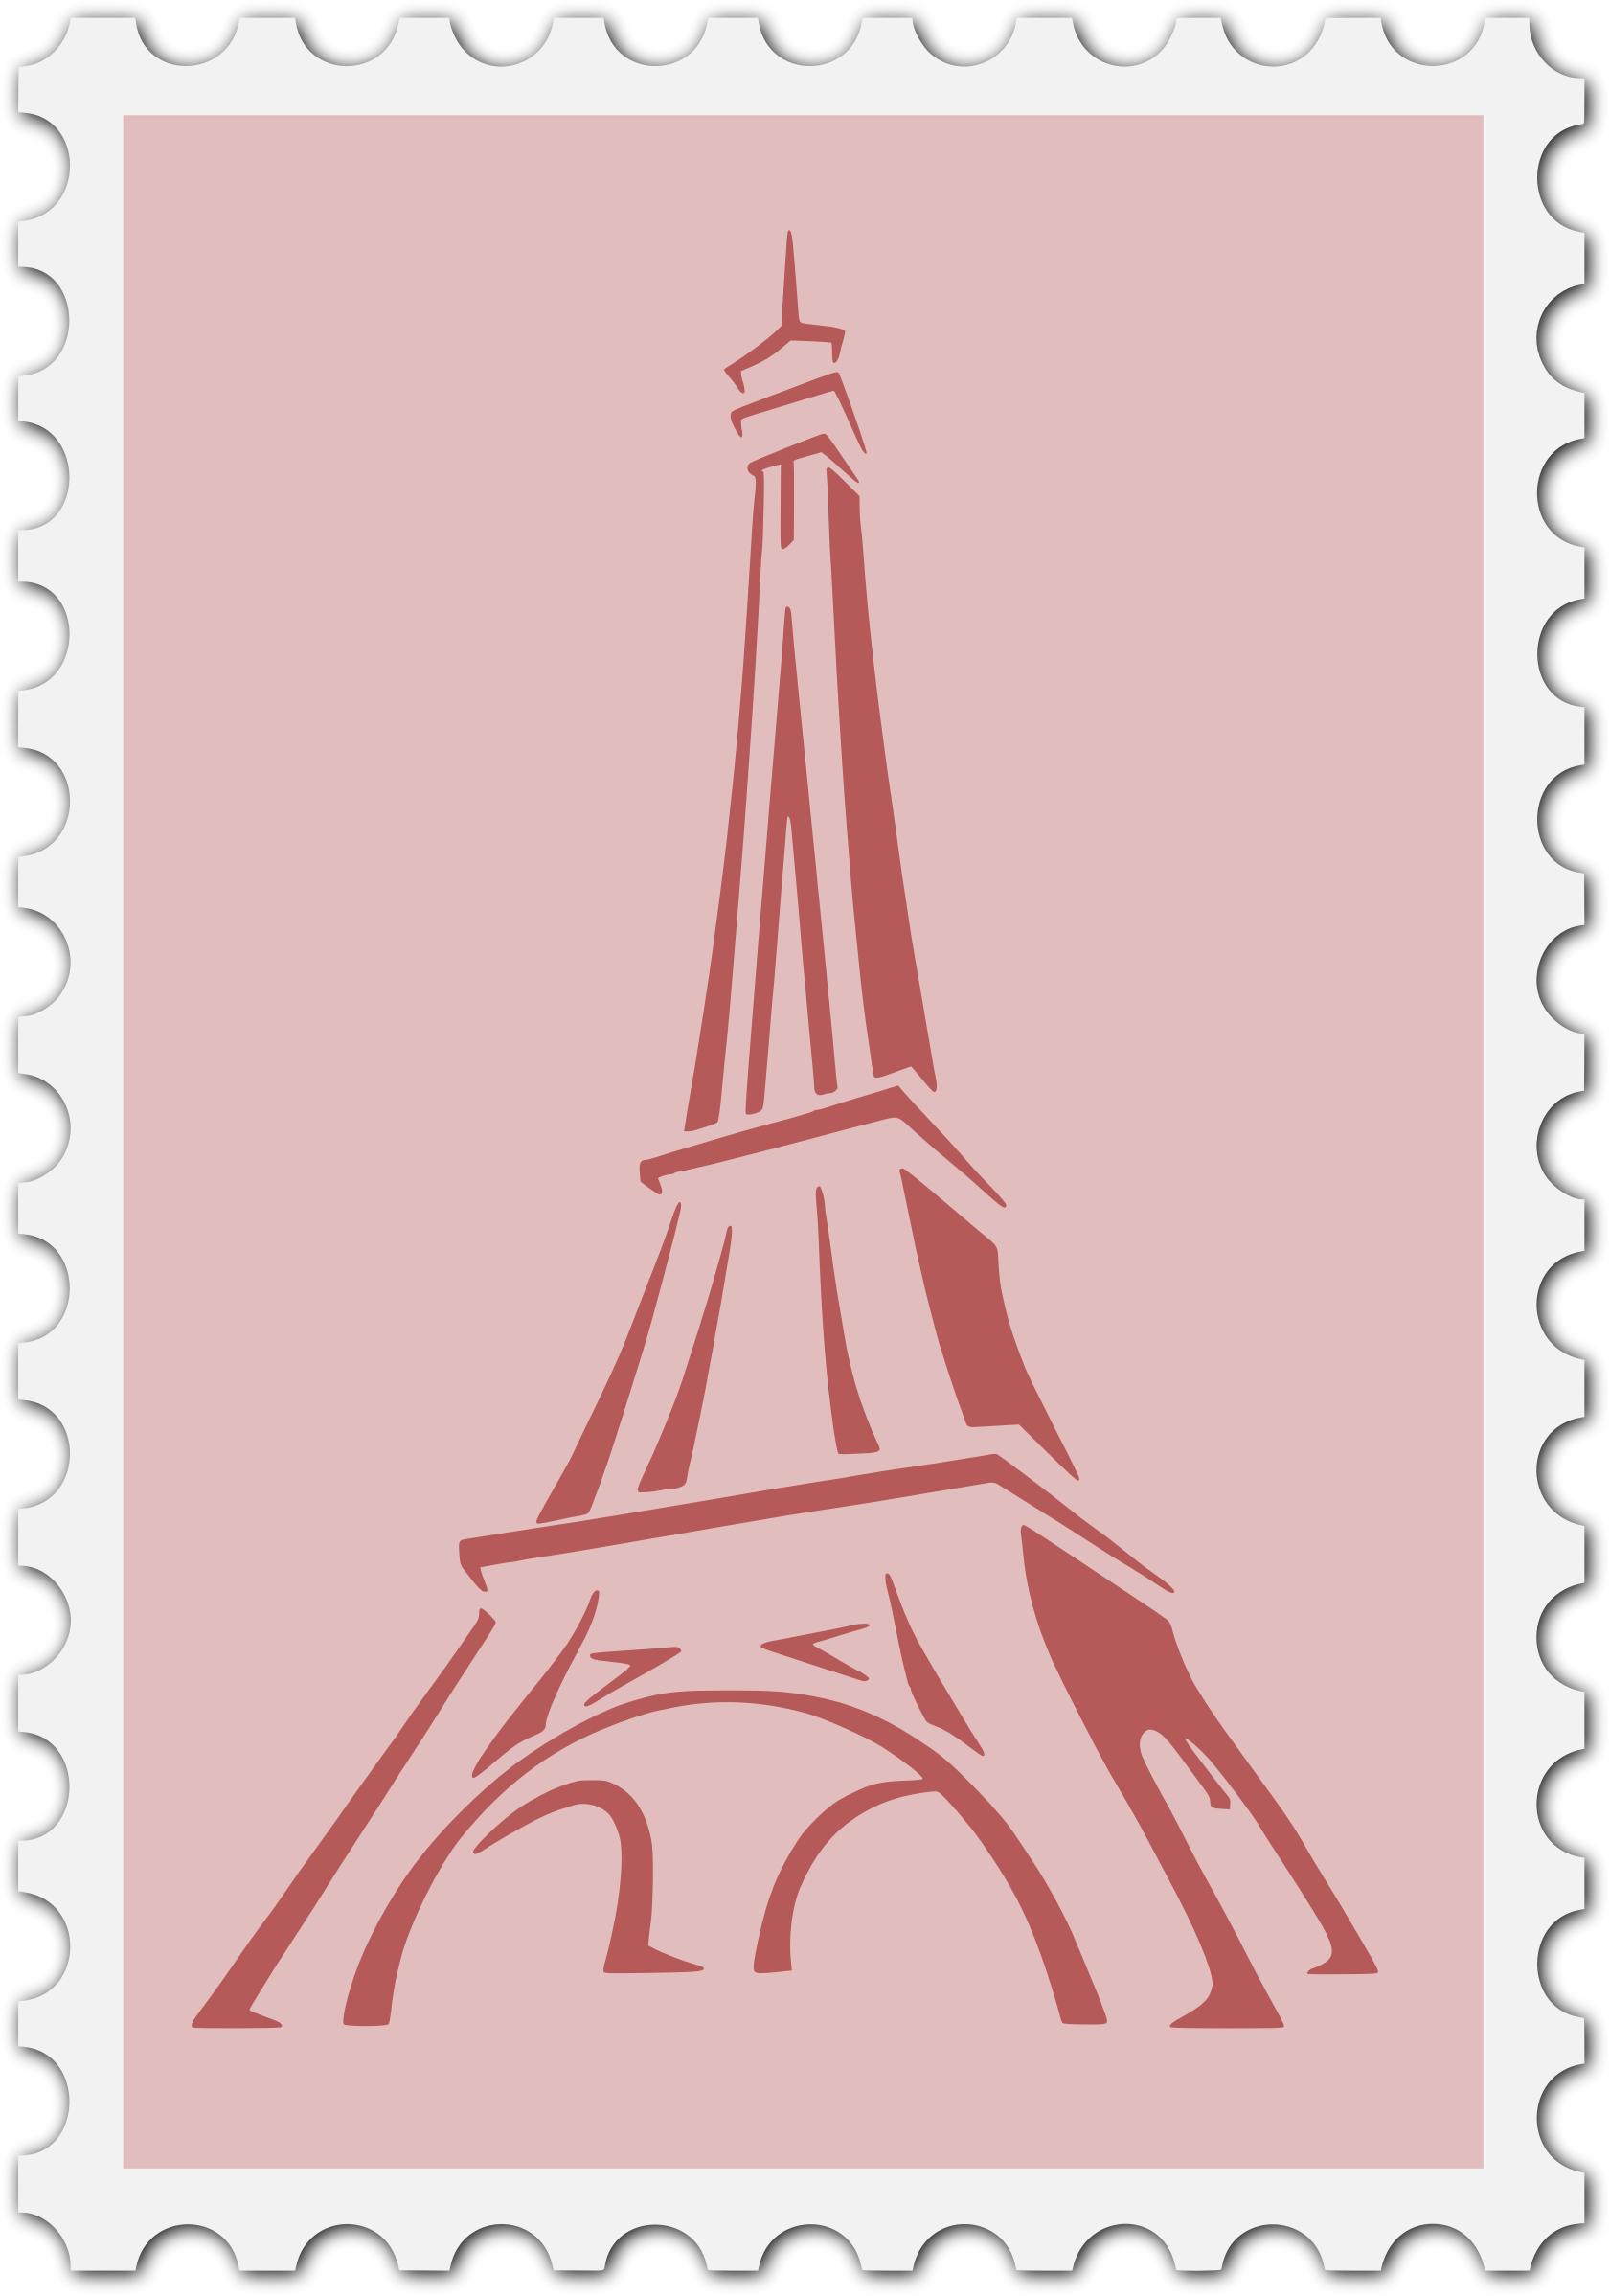 French stamp by Firkin